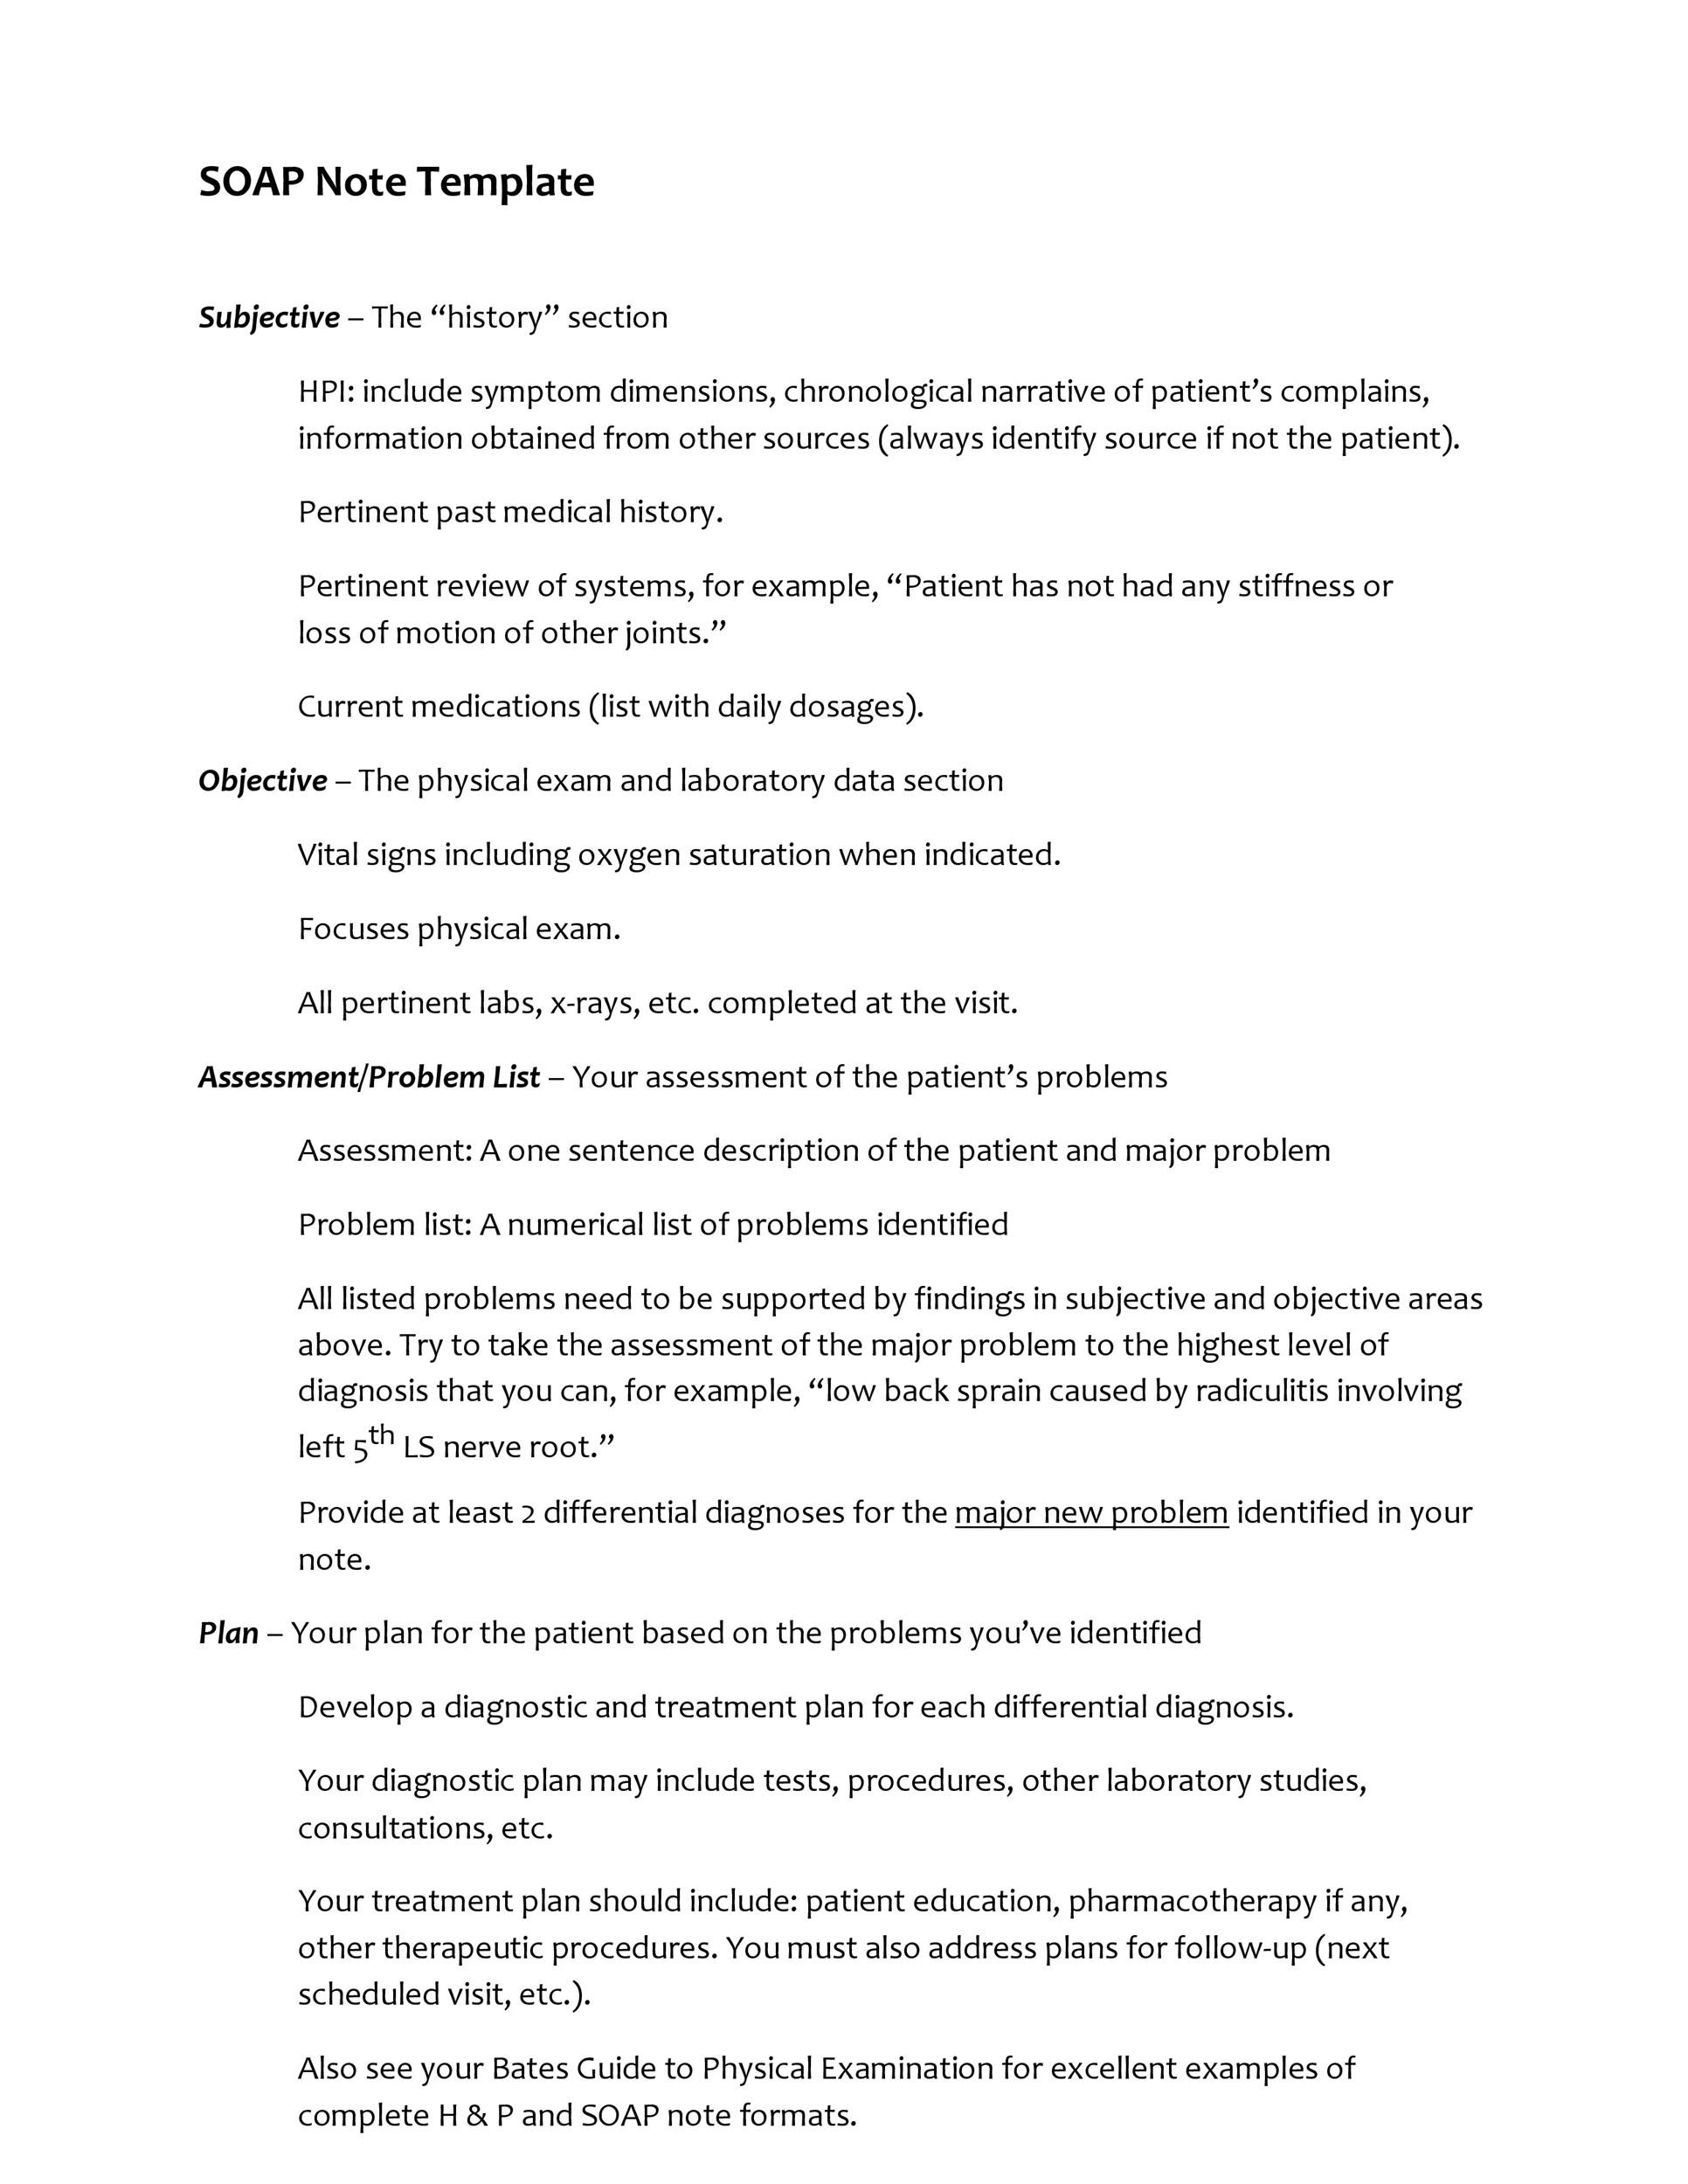 Soap Note Template Word